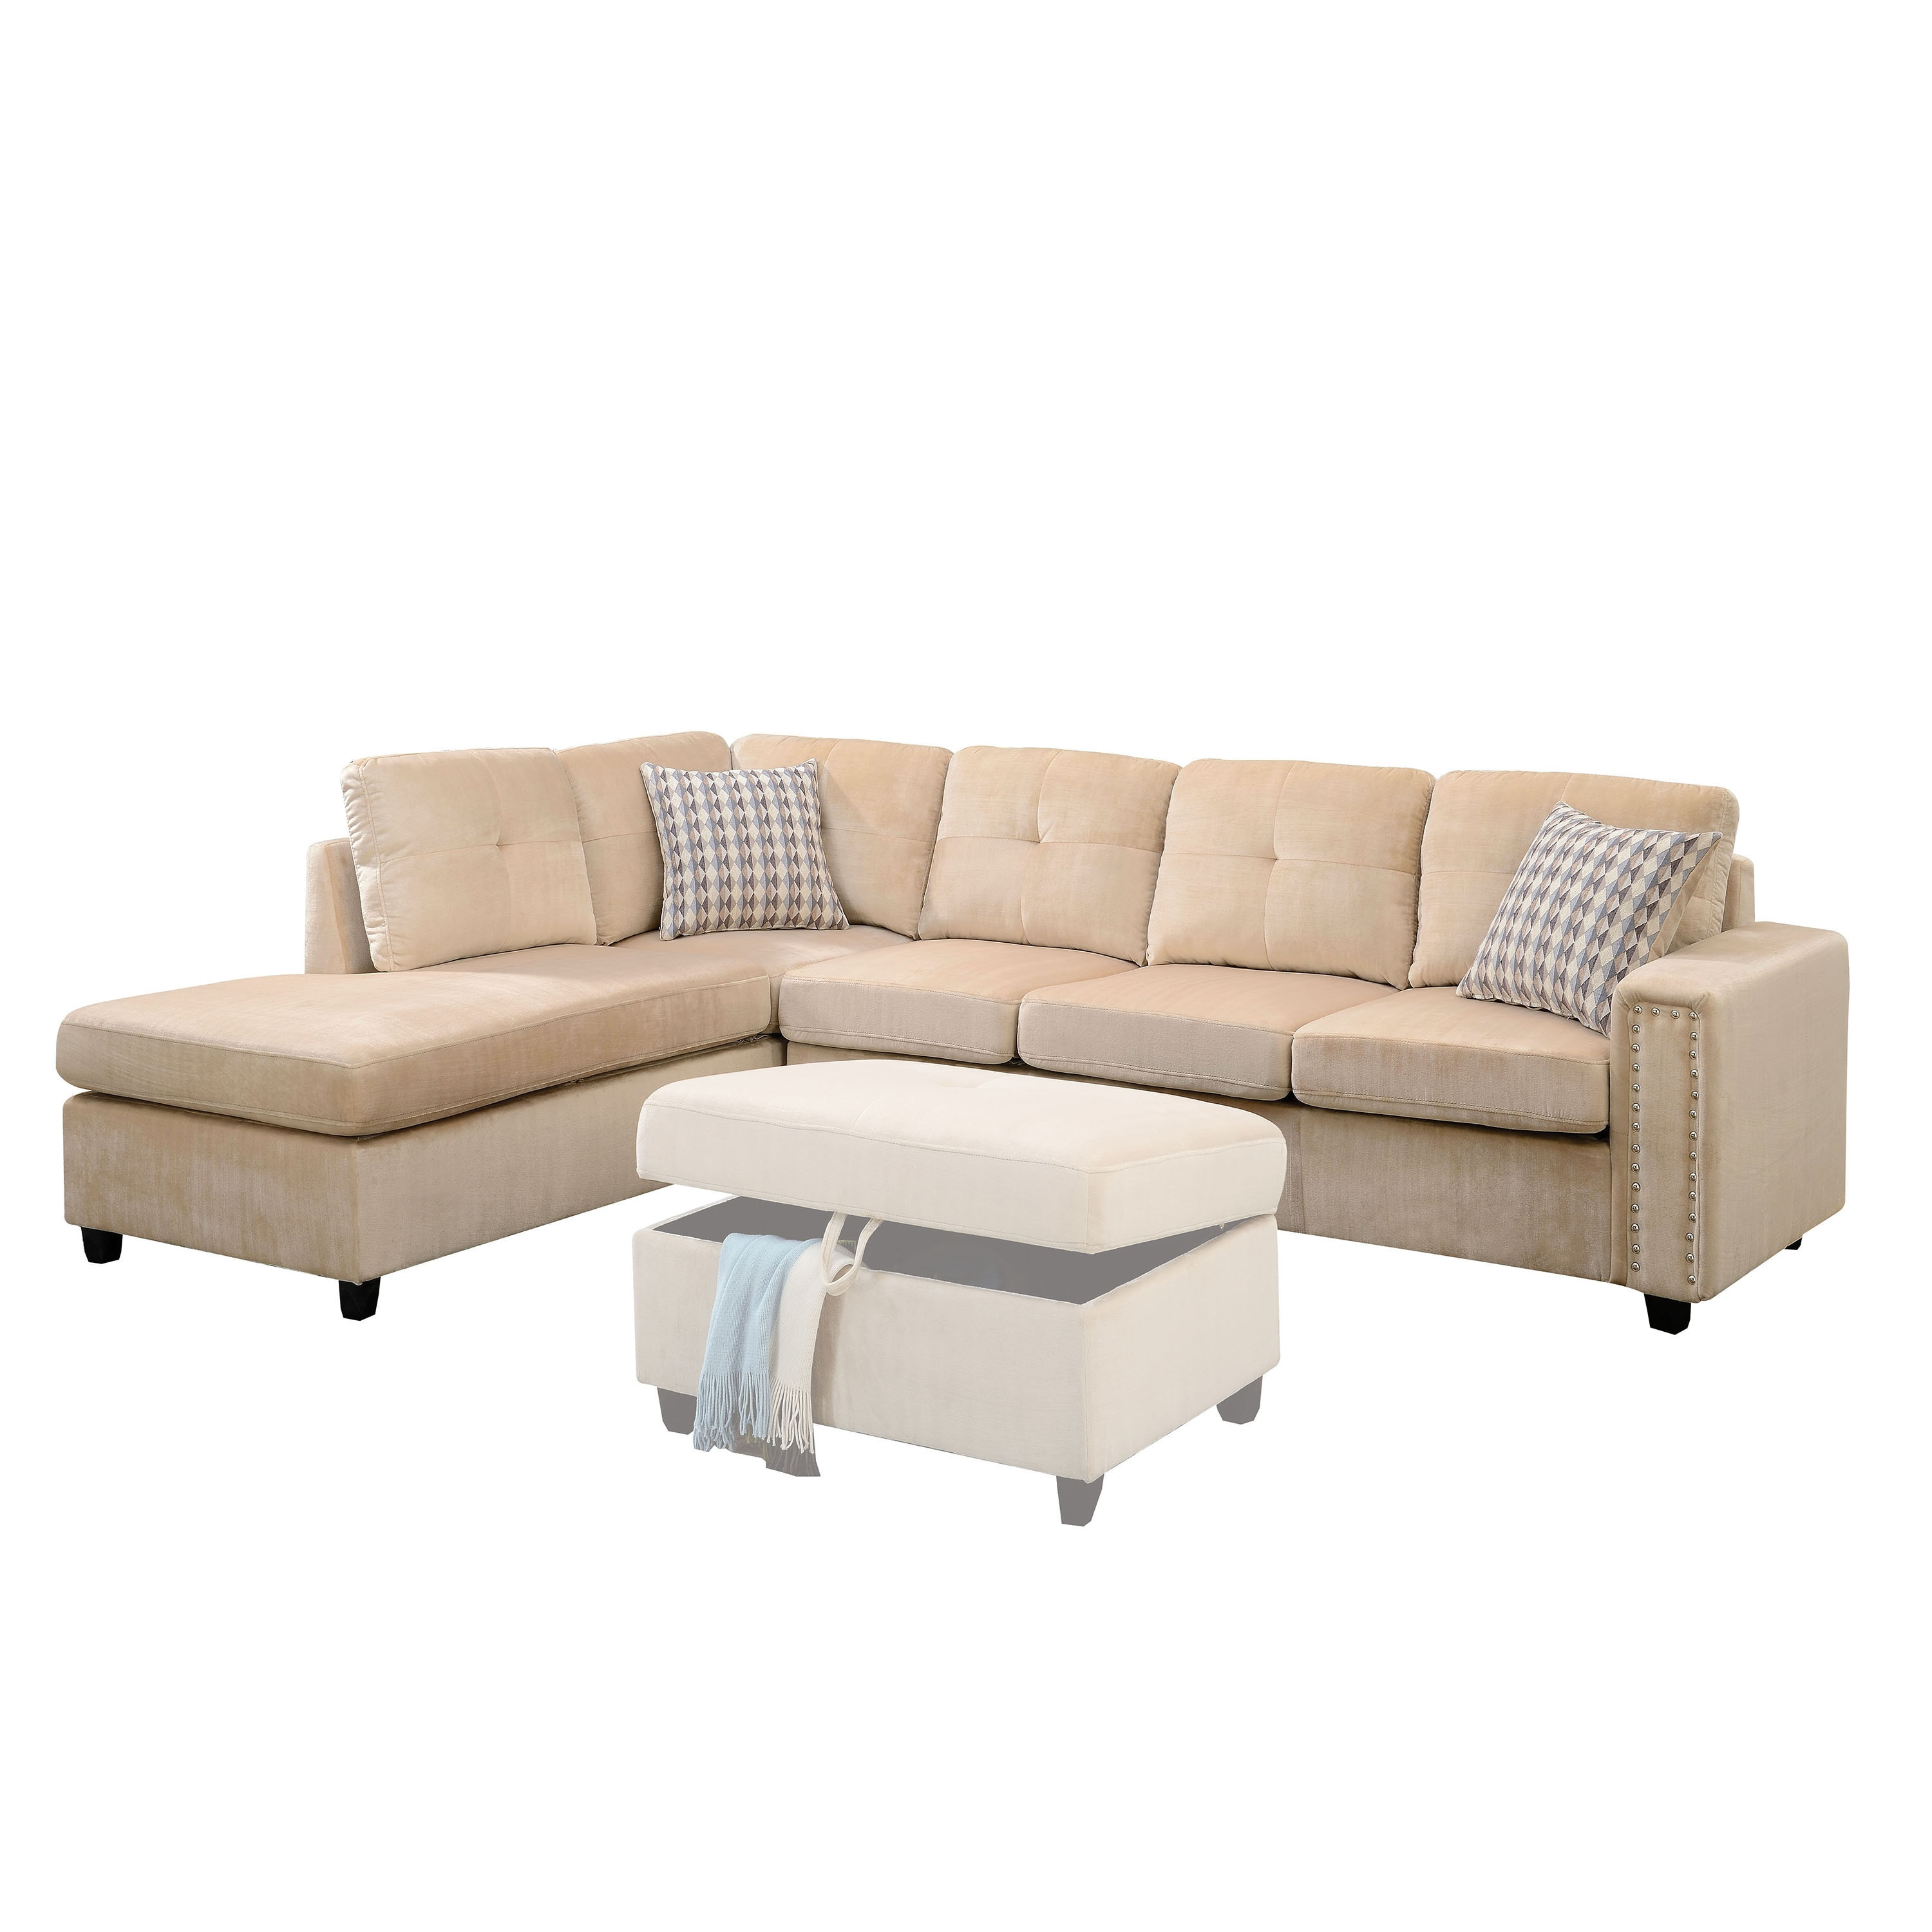 Acme Furniture Belville Sectional Sofa With Pillows Reversible Free Shipping Today 14442416